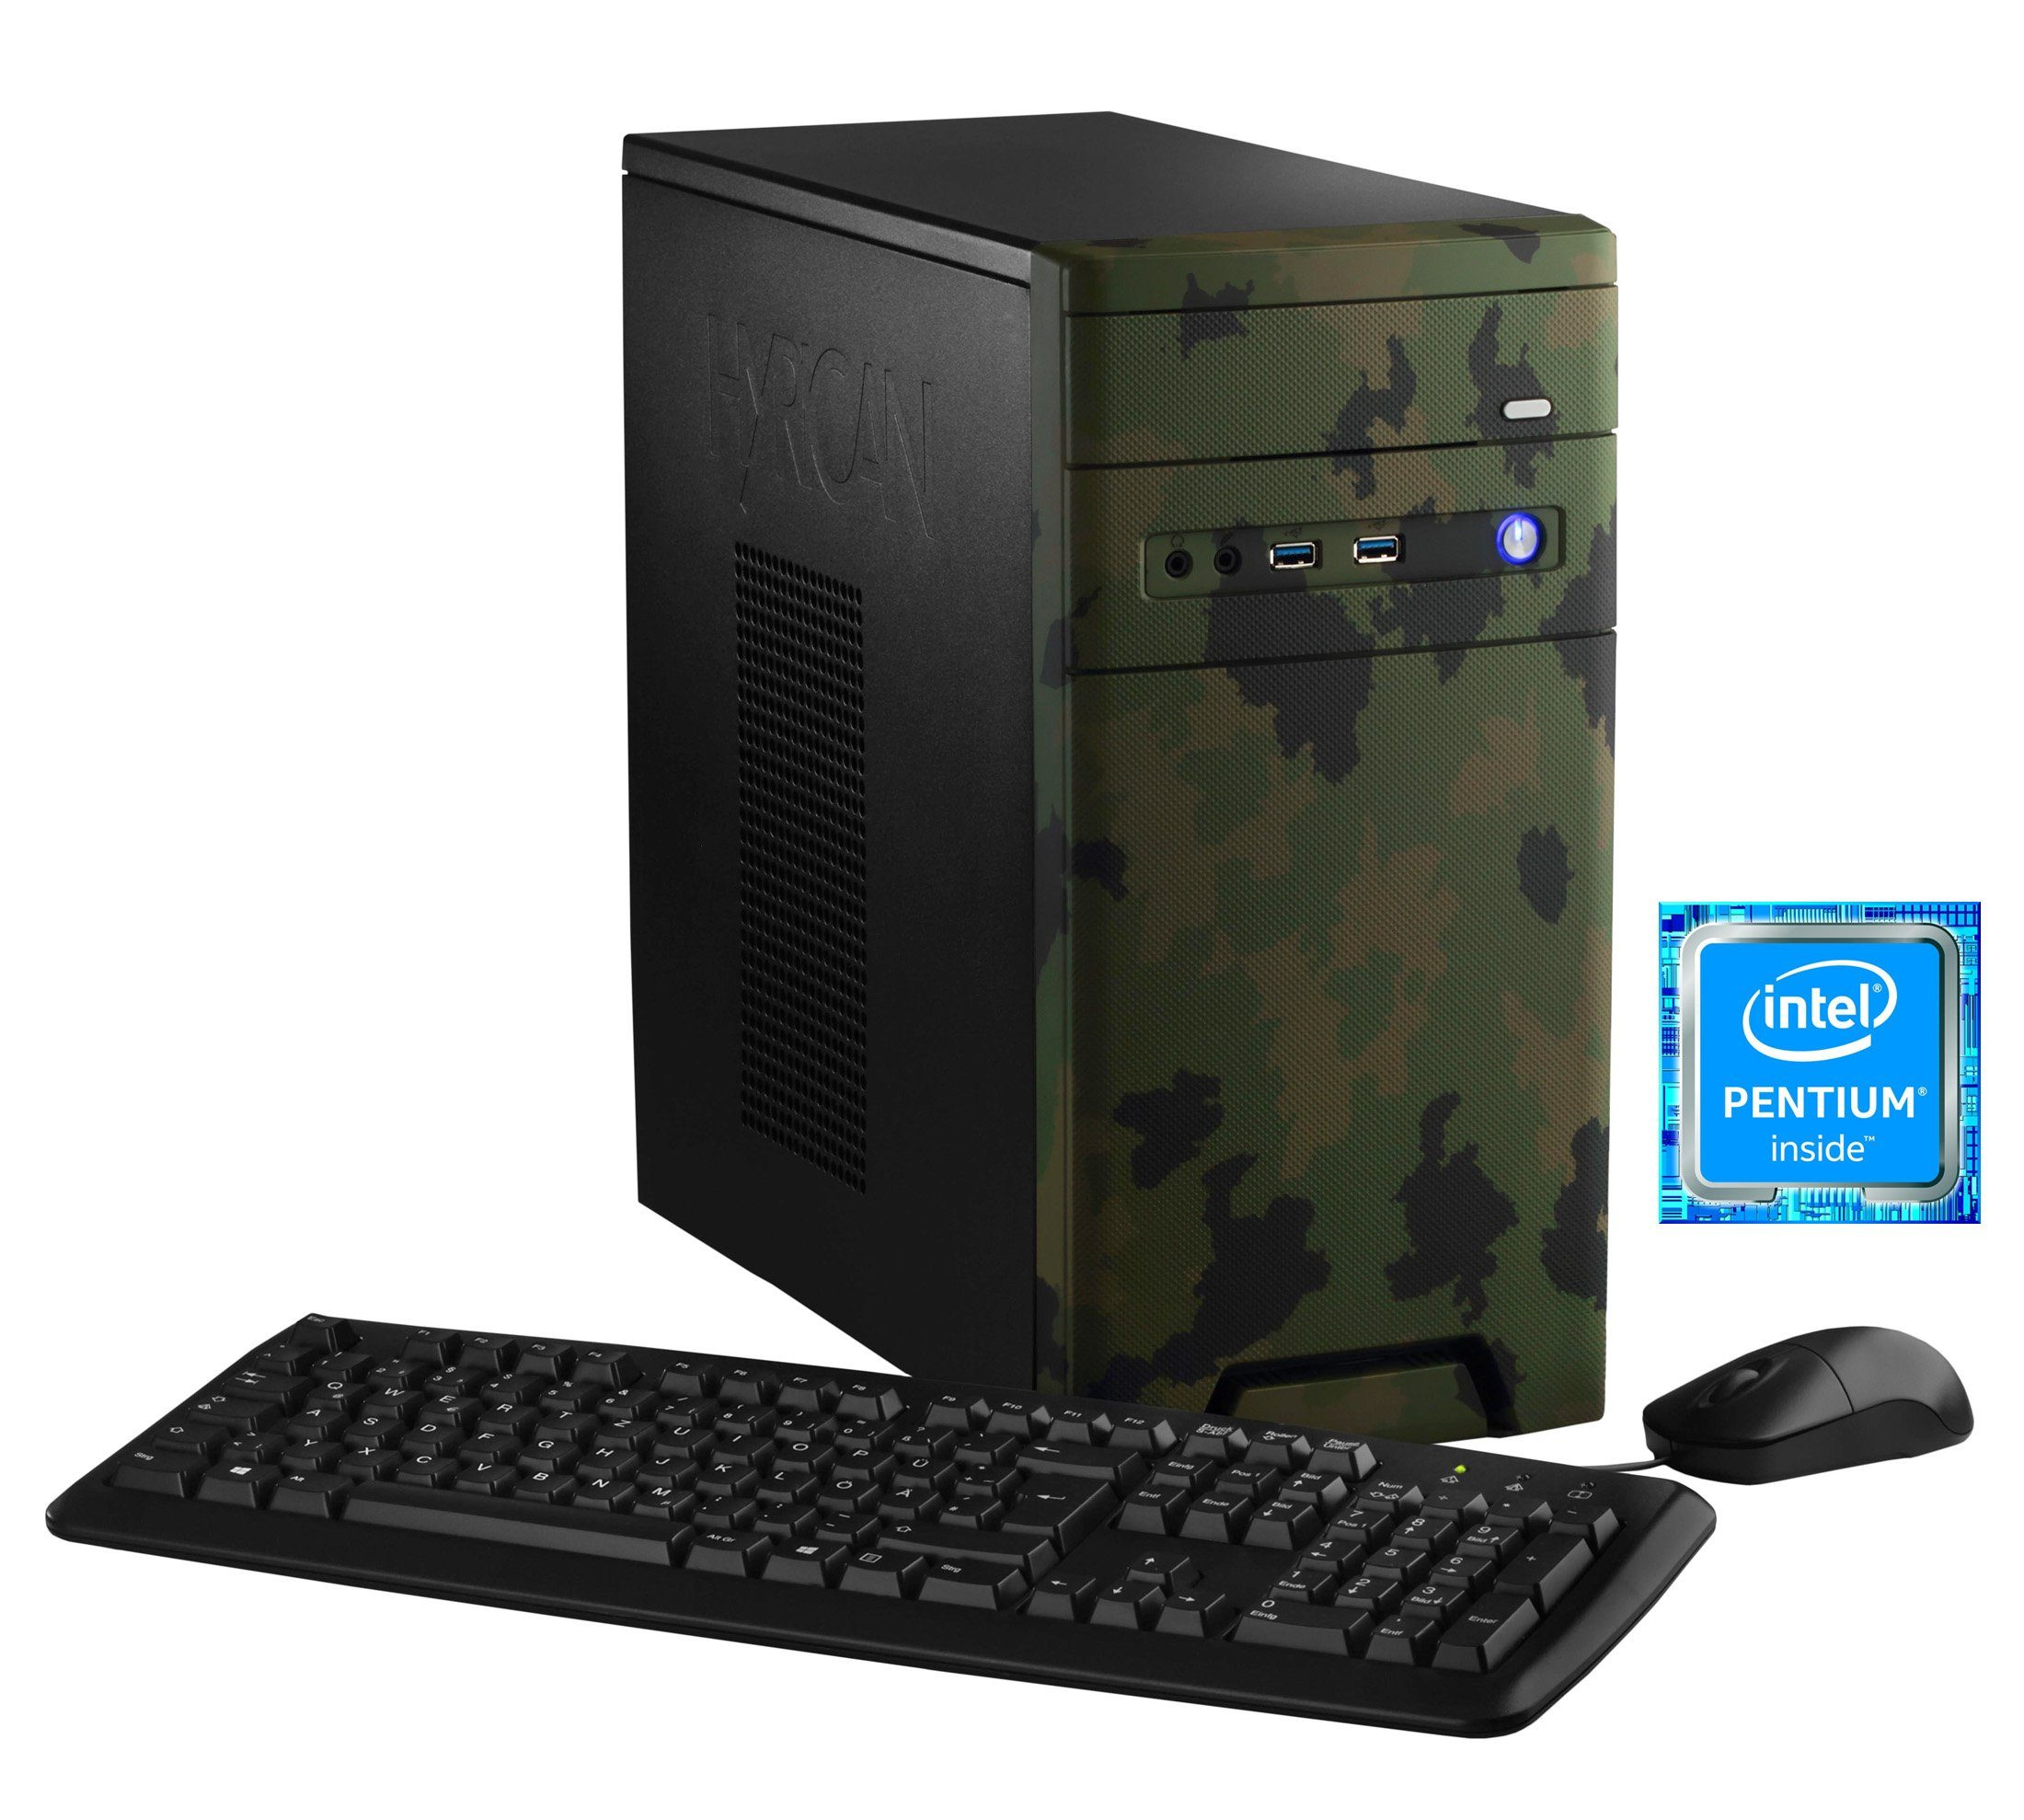 HYRICAN Gaming PC Intel® Pentium® G4560, 8GB, 1TB, GeForce® GTX 1050 »CyberGamer forest 5565«